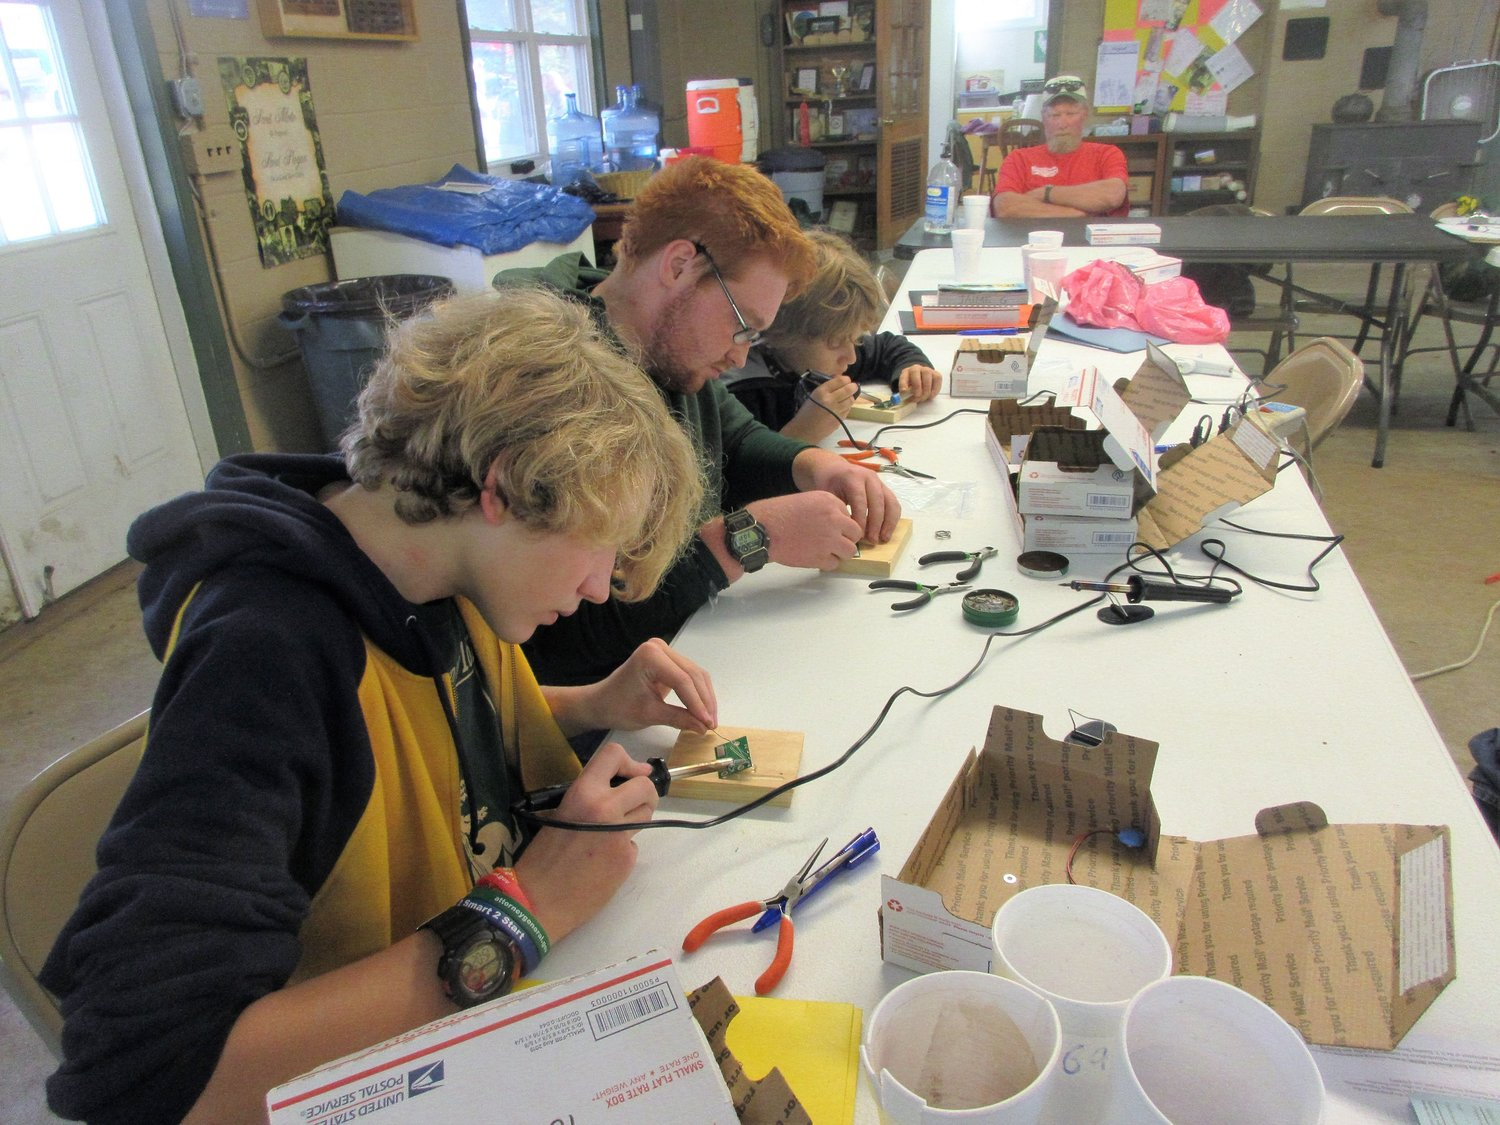 Brock Leach, Kyle Hoyt and Jesse Reigle try their hand at soldering circuit boards during the electronics merit badge.